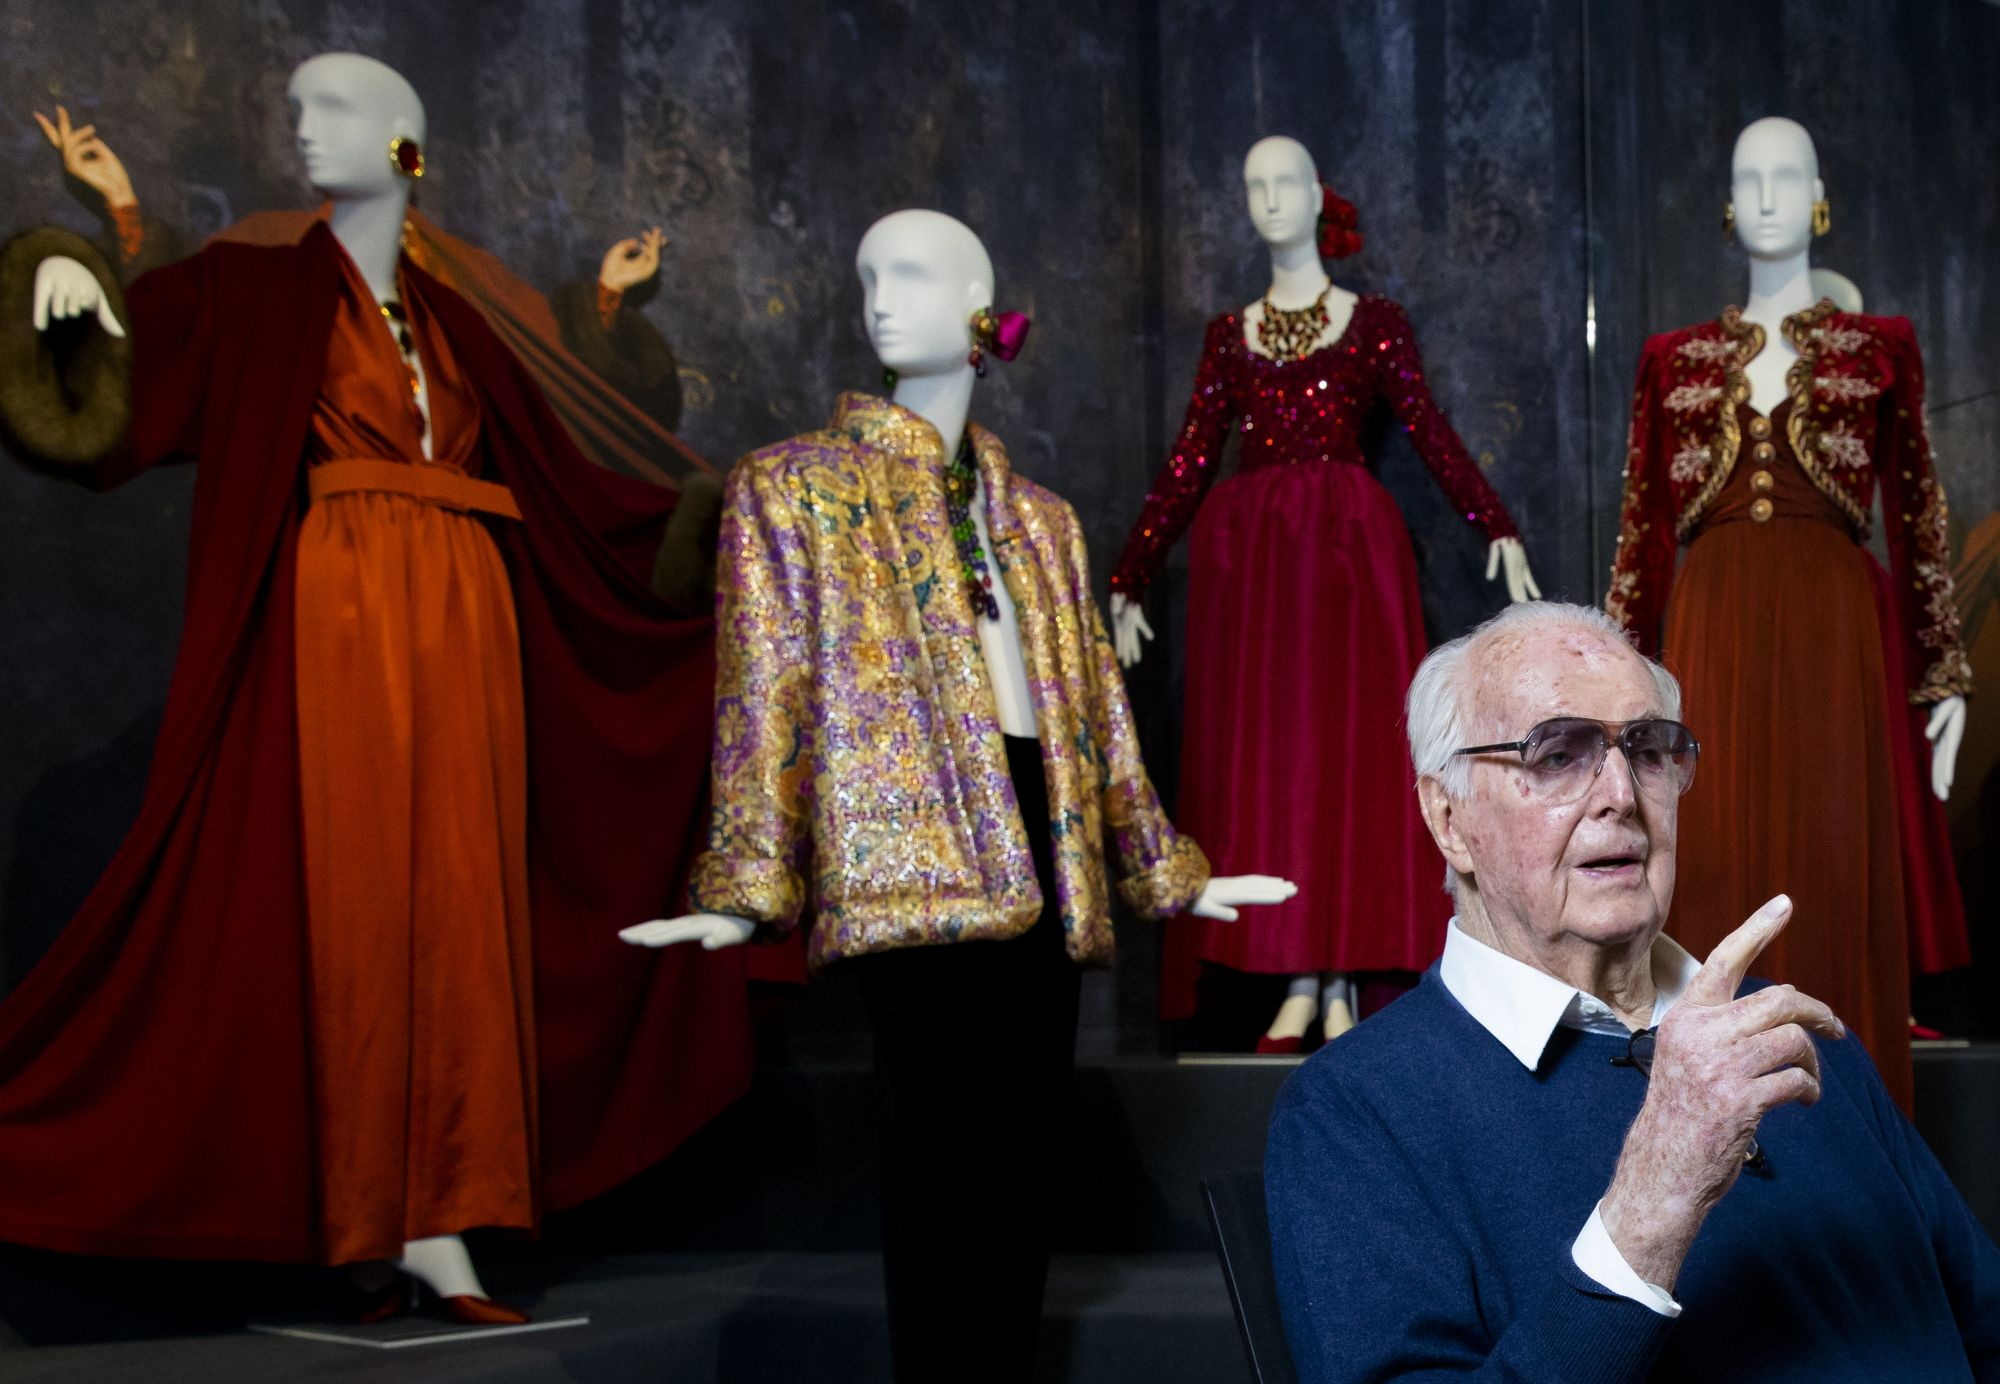 8 Of Hubert De Givenchy's Most Iconic Looks